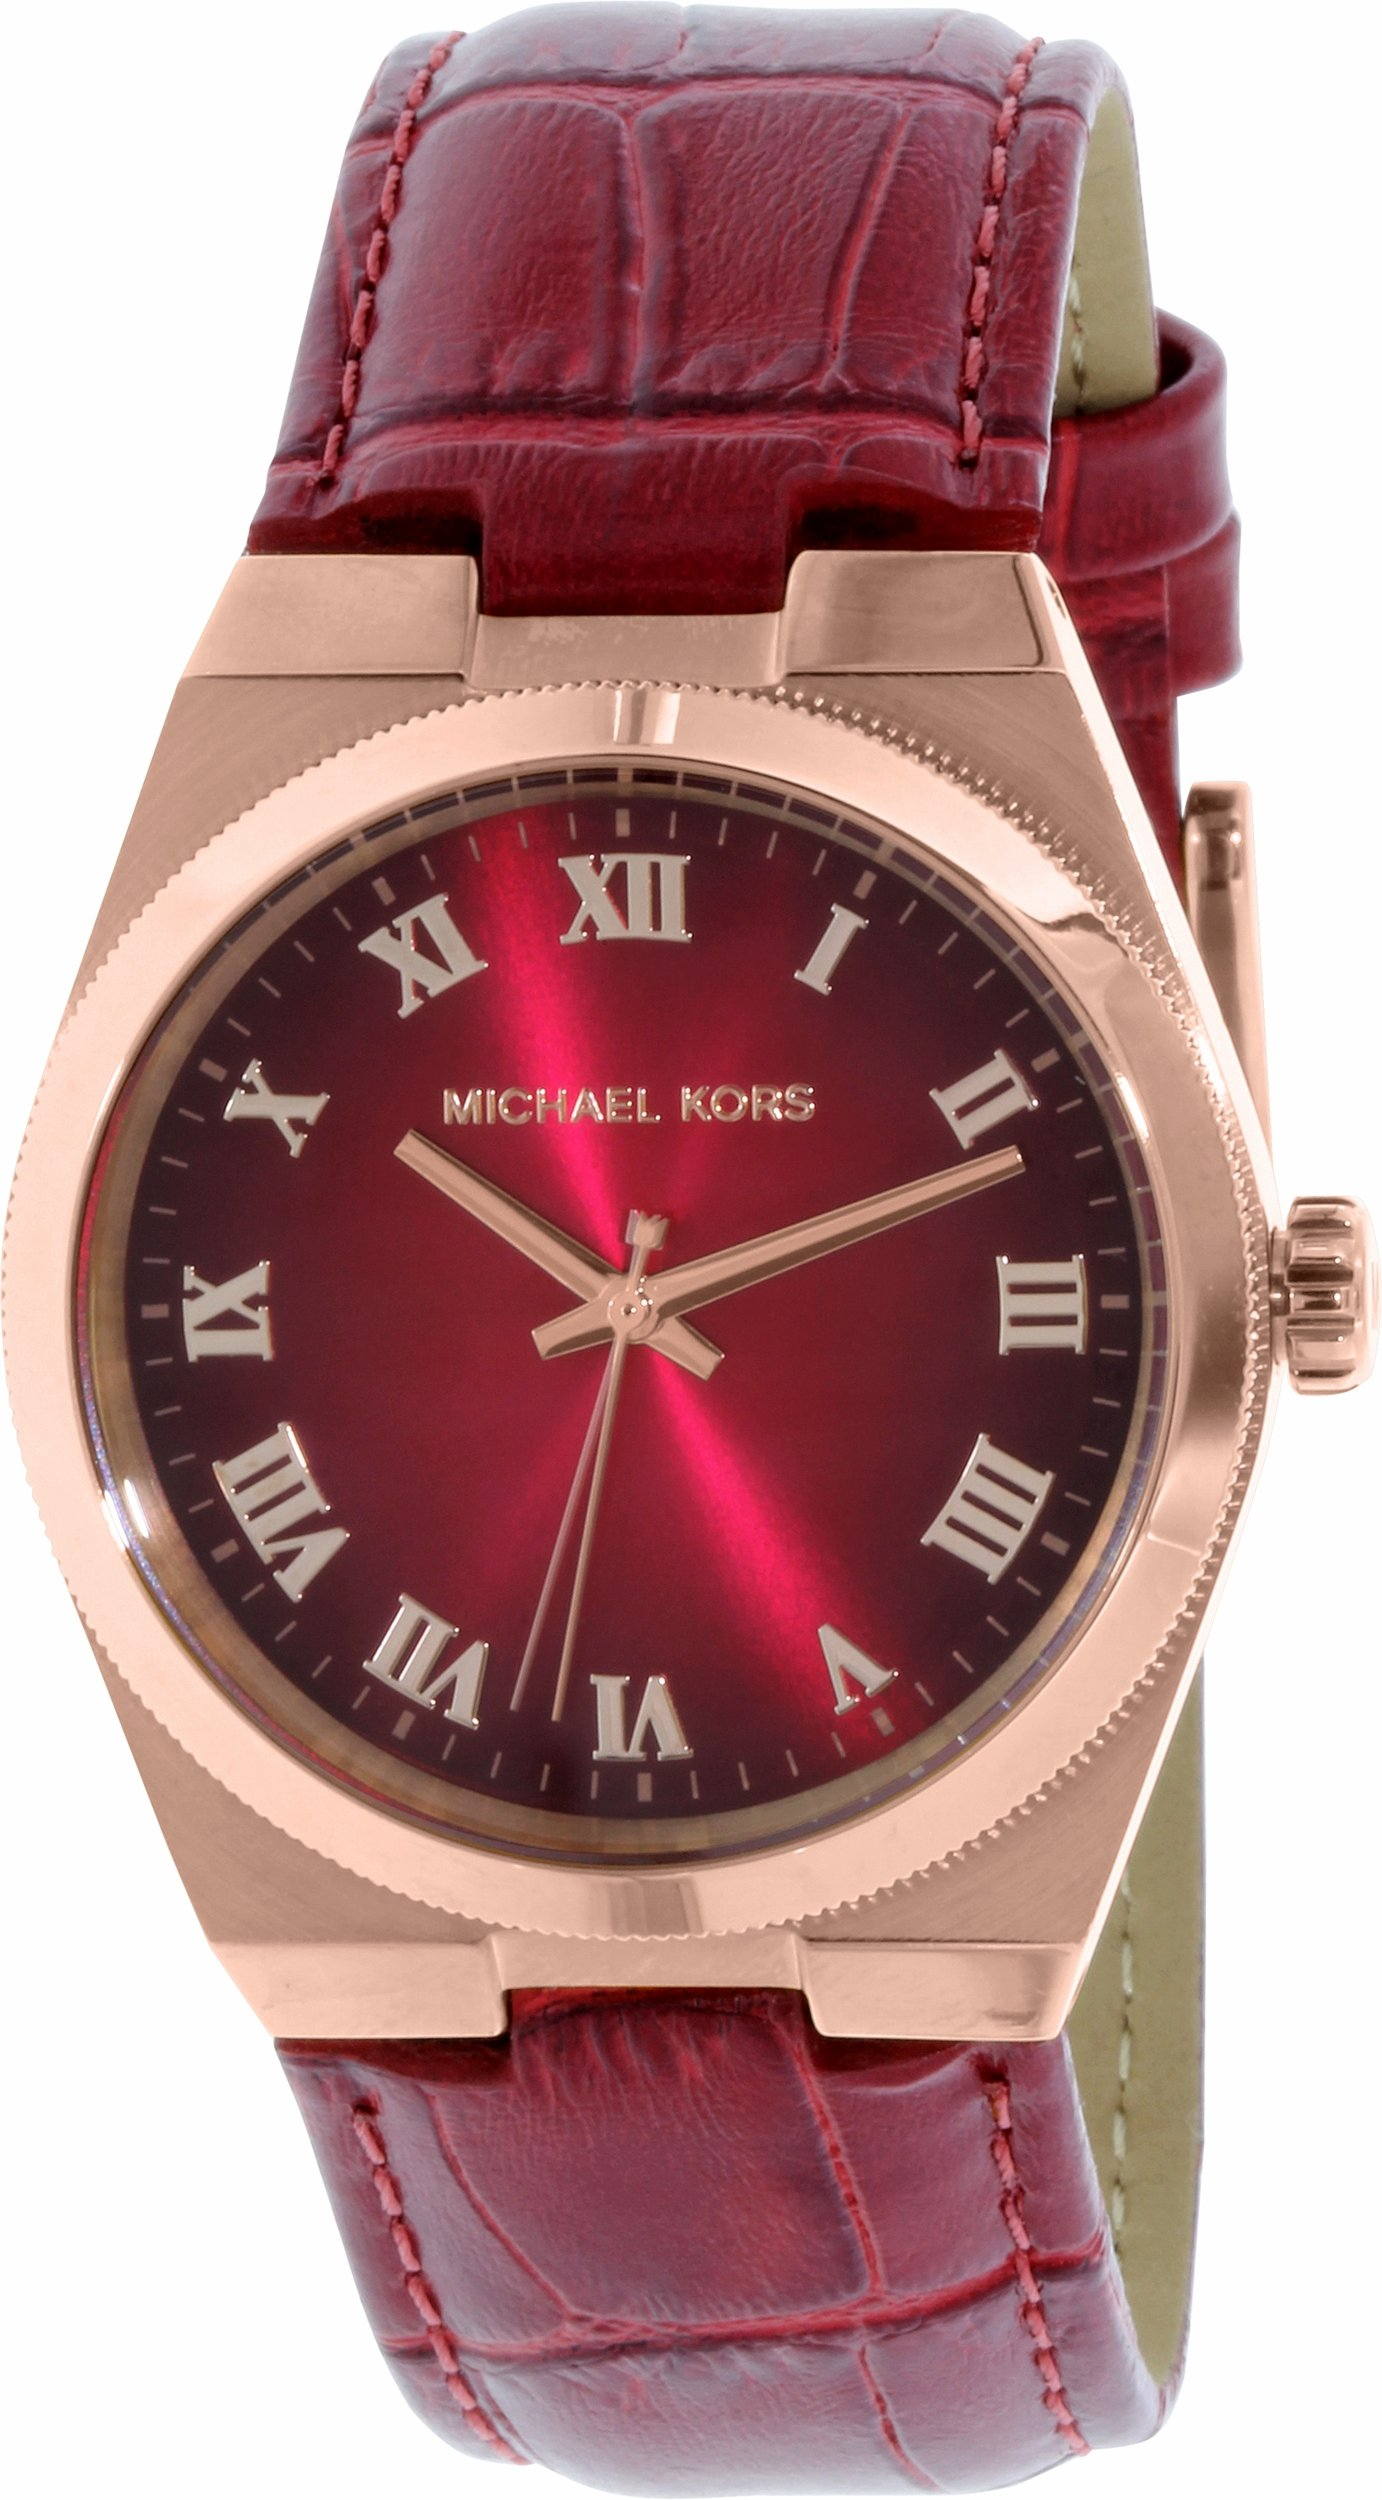 Michael Kors Channing Red Dial Red Leather Unisex Watch MK2357 by Michael Kors